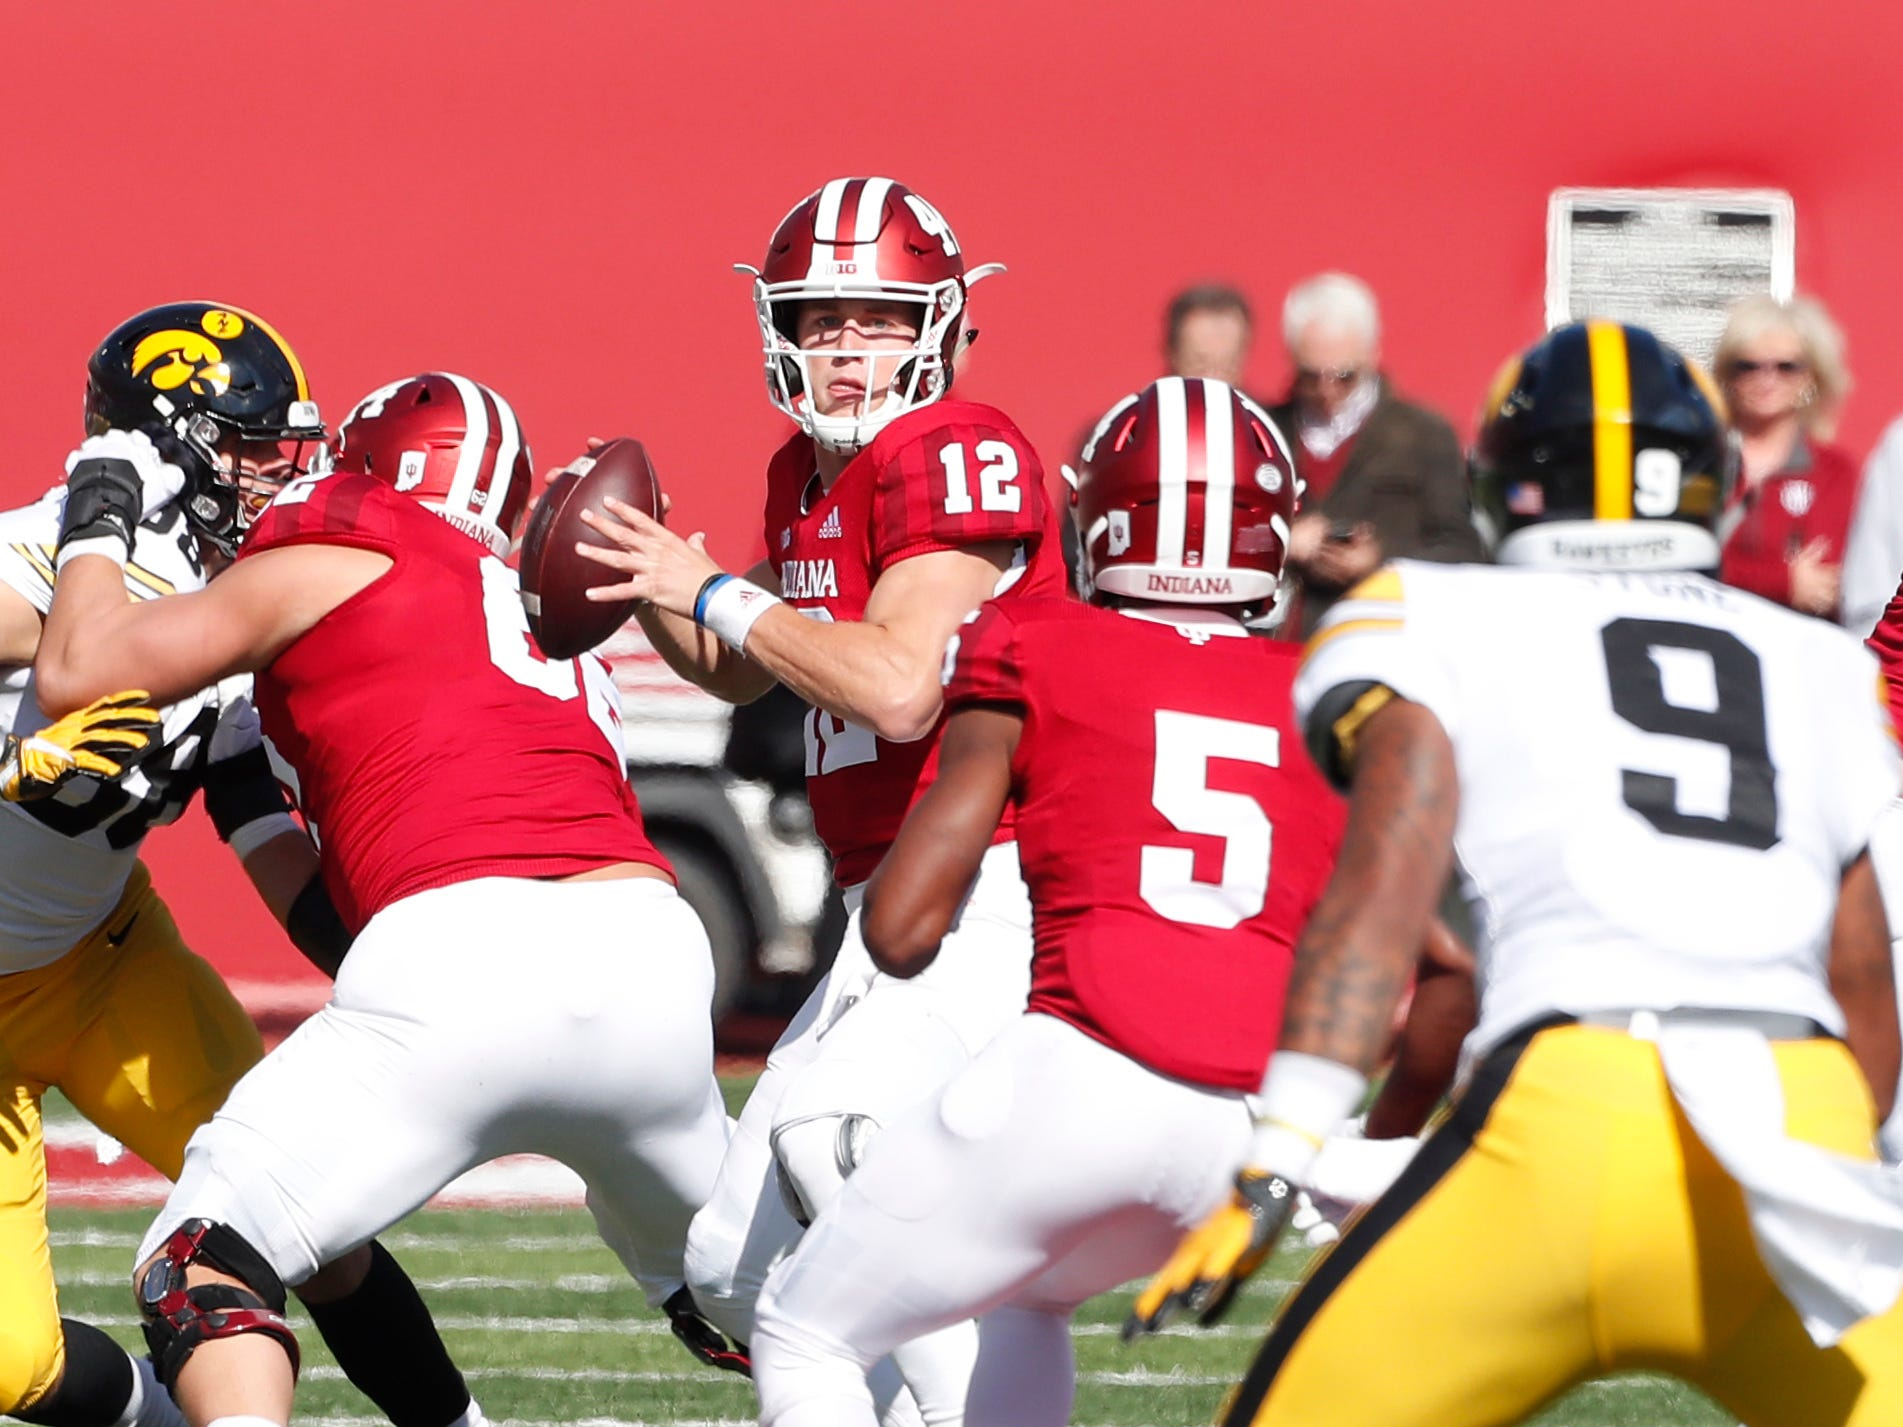 Indiana Hoosiers quarterback Peyton Ramsey (12) throws a pass against the Iowa Hawkeyes during the first quarter at Memorial Stadium .